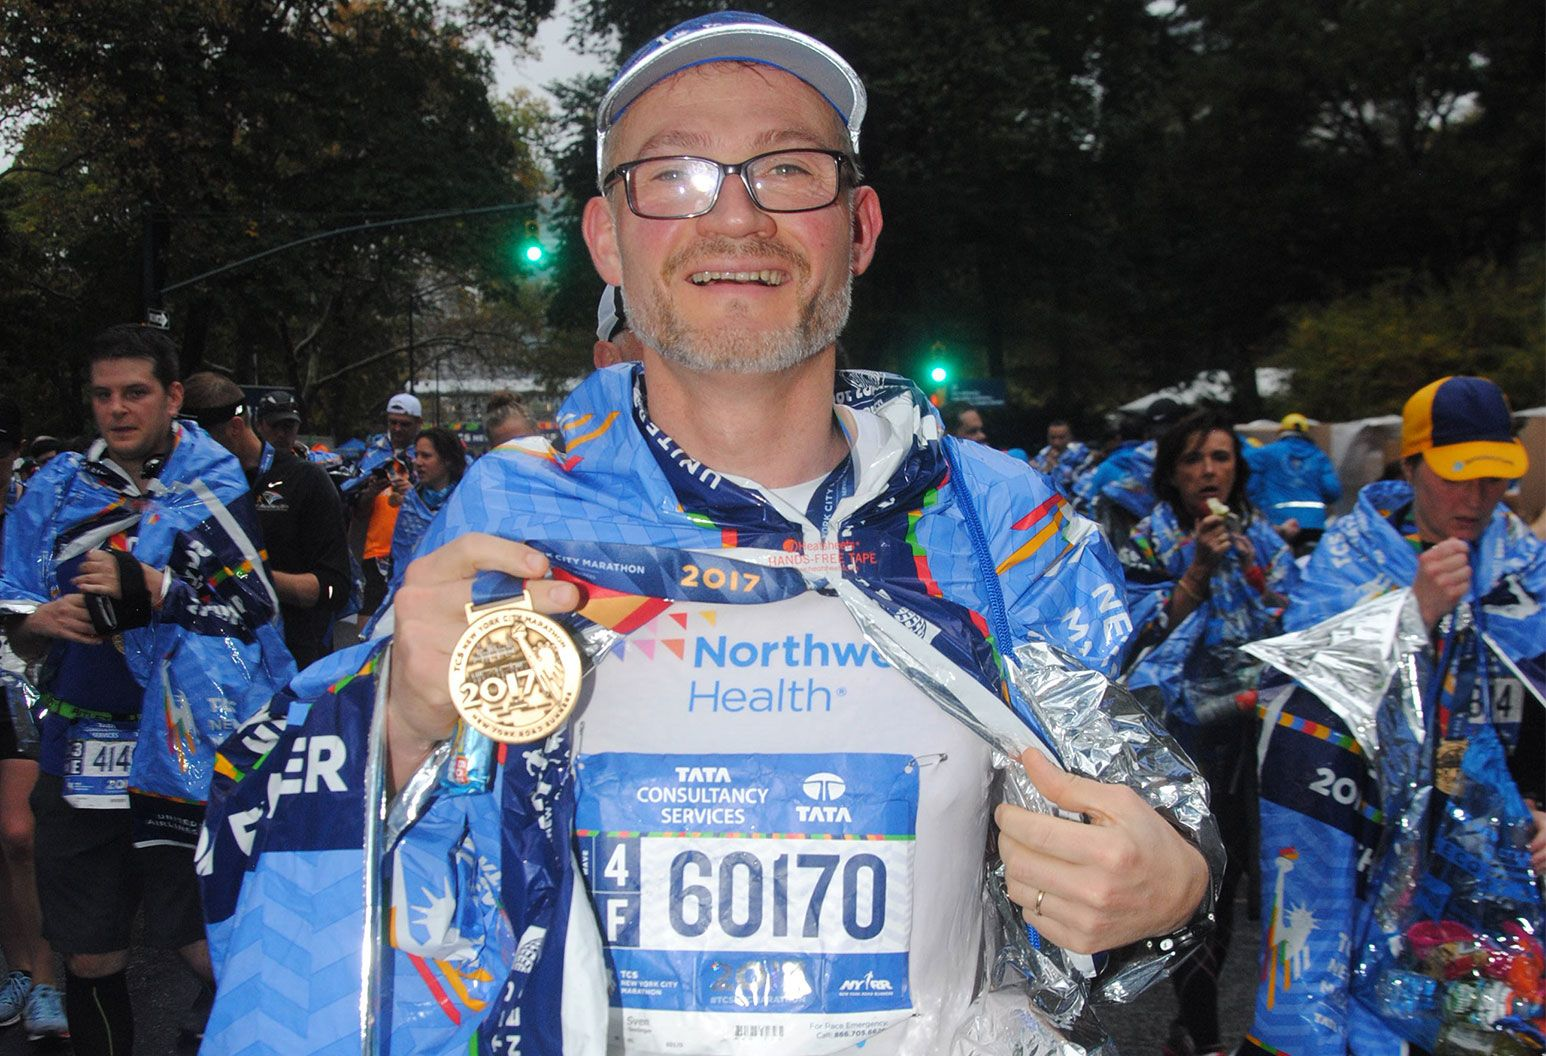 An older man in glasses with a scruffy beard stands exhausted holding a medal a gold medal in his right hand. He is wearing a running outfit with a marathon number attached to his shirt.